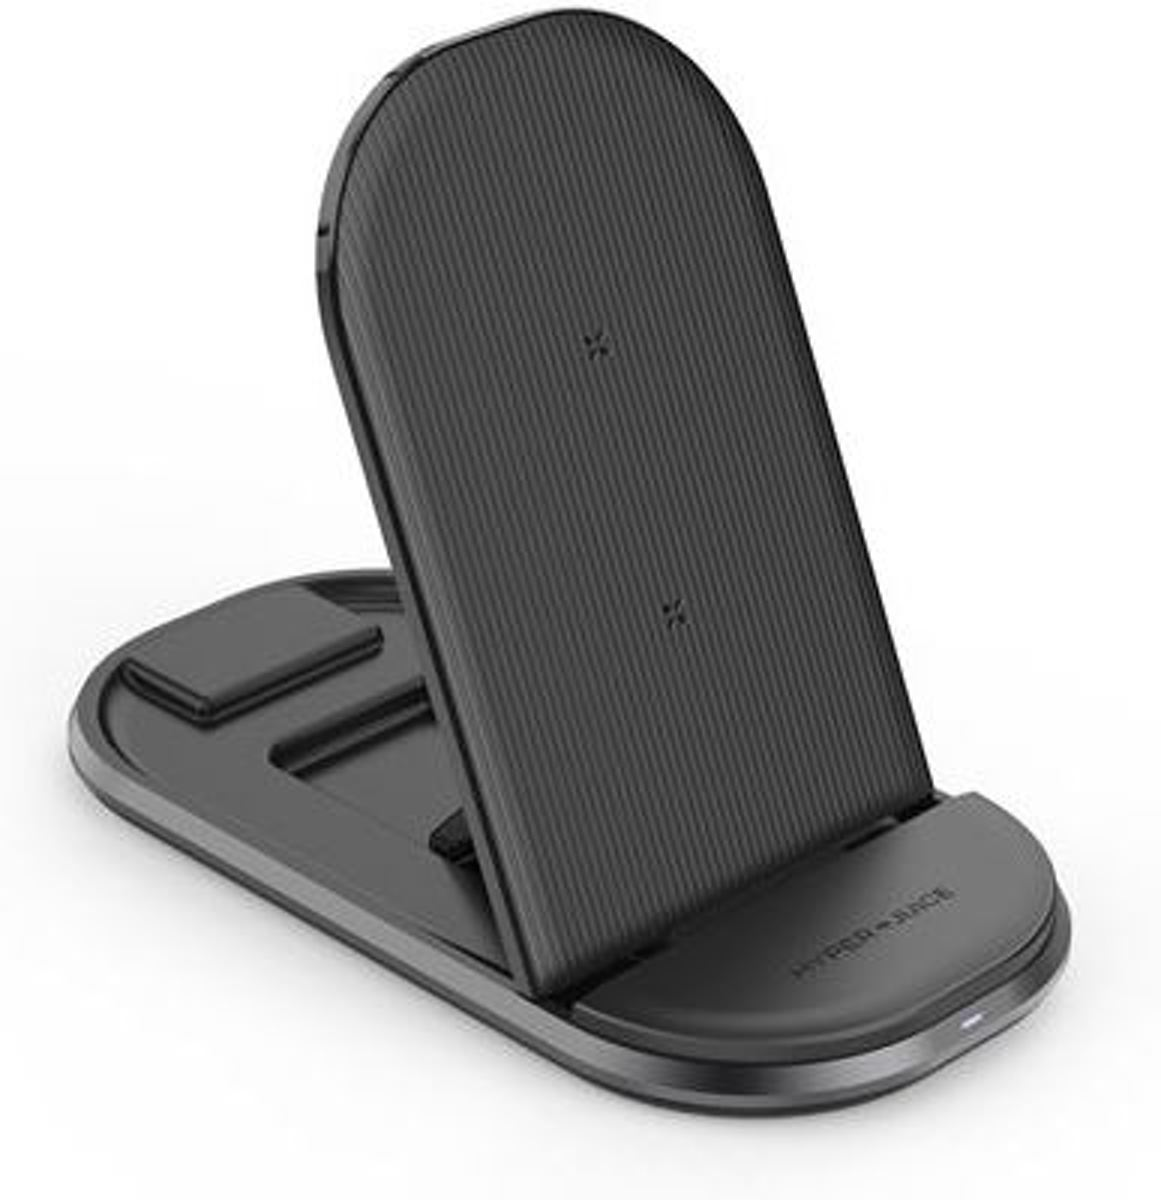 Hyper 7,5W wireless charger with USB-A connector